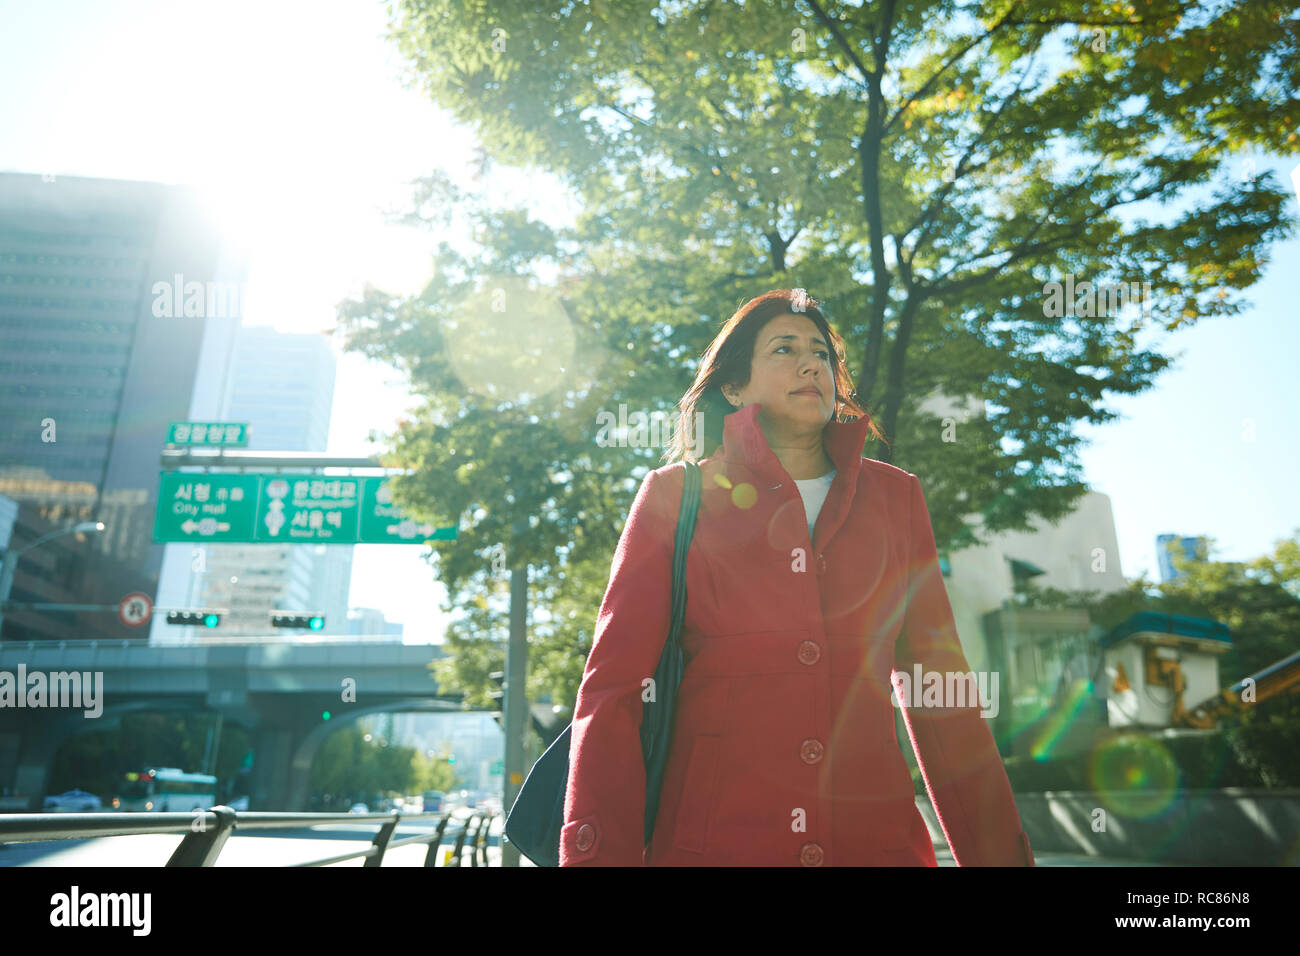 Businesswoman exploring city, Seoul, South Korea - Stock Image